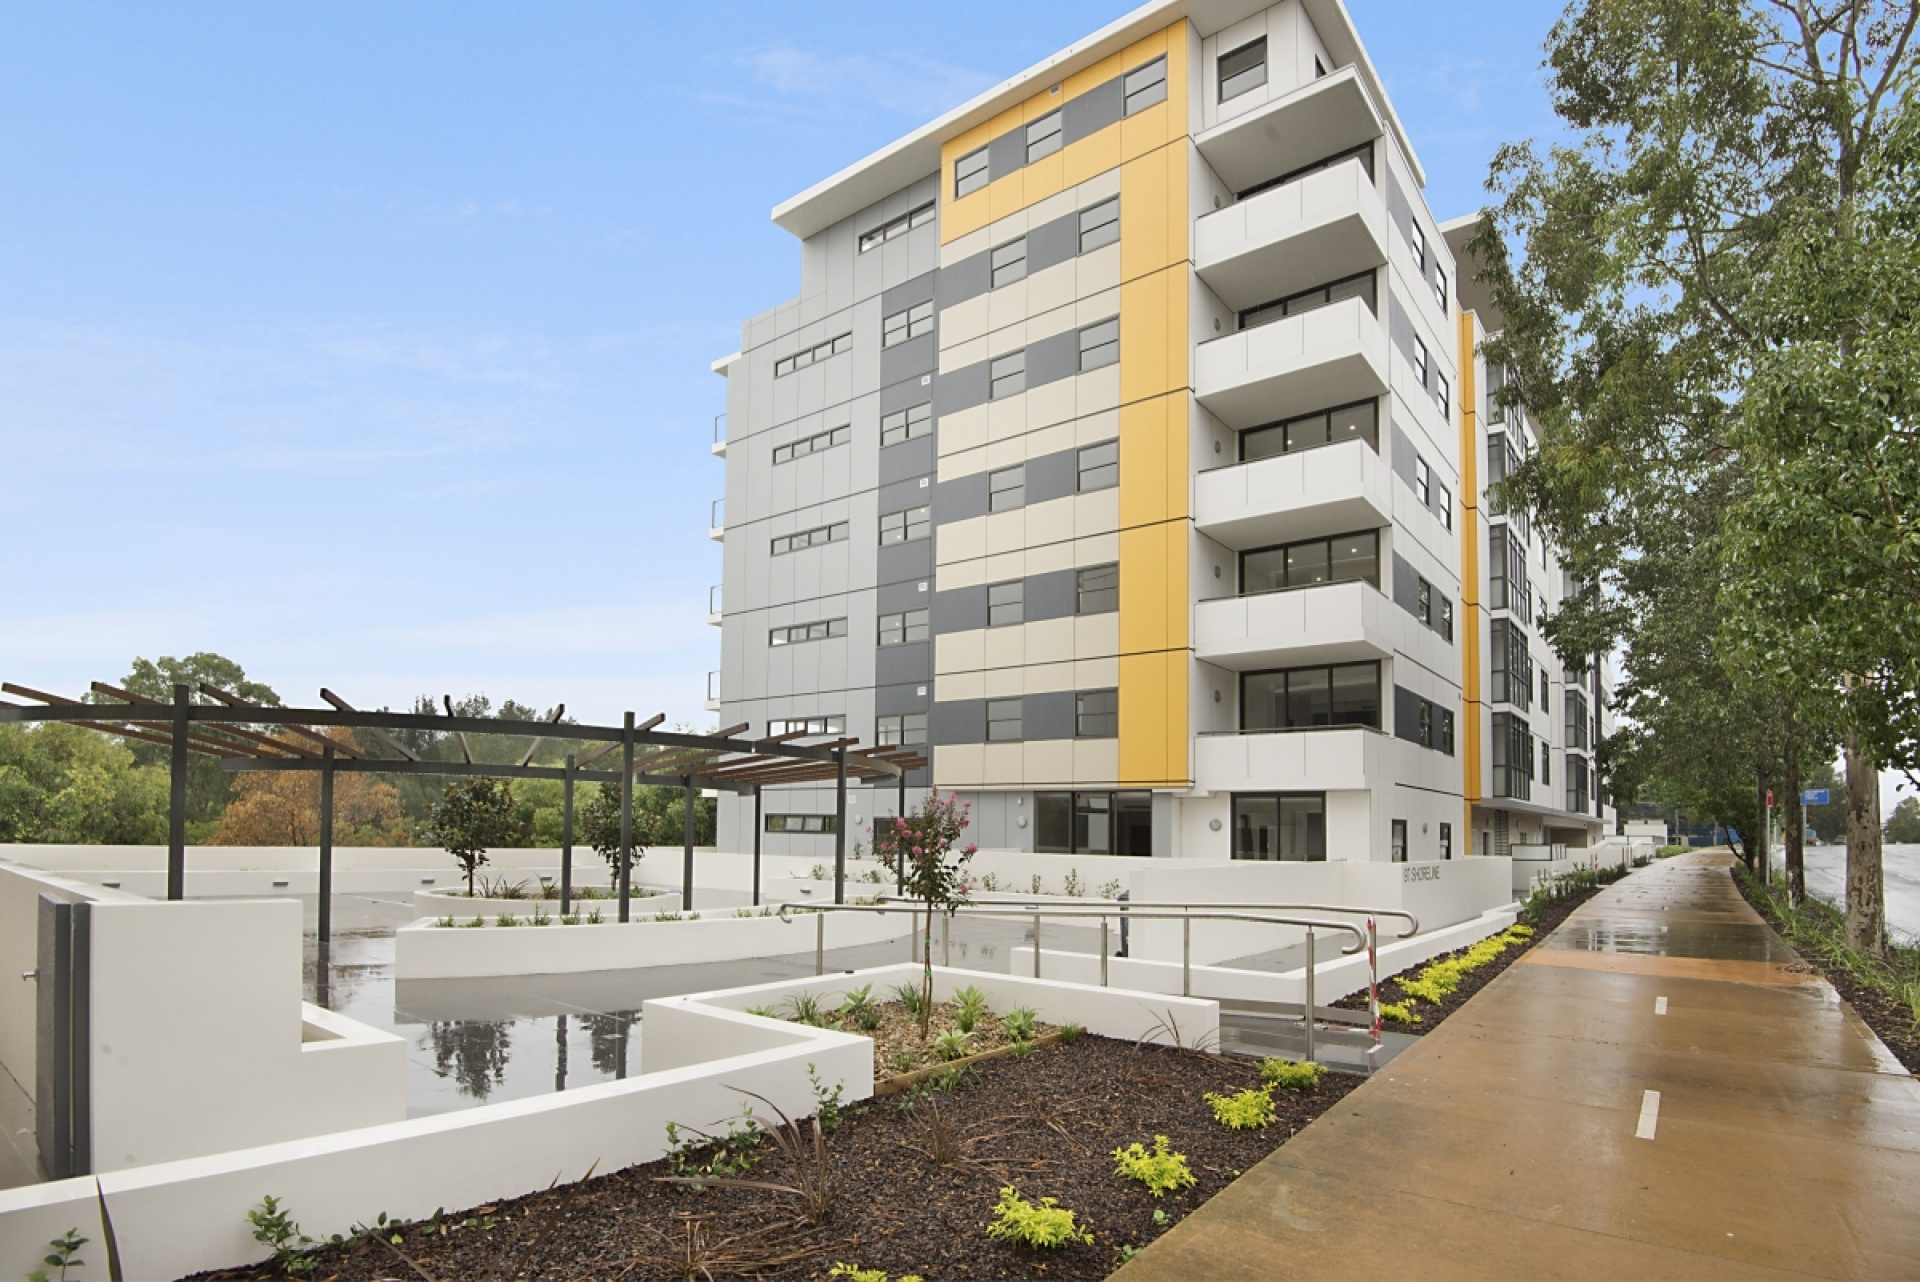 3 Bedrooms, Apartment, Leased, Caddies Boulevard, 2 Bathrooms, Listing ID 1140, Rouse Hill, NSW, Australia,